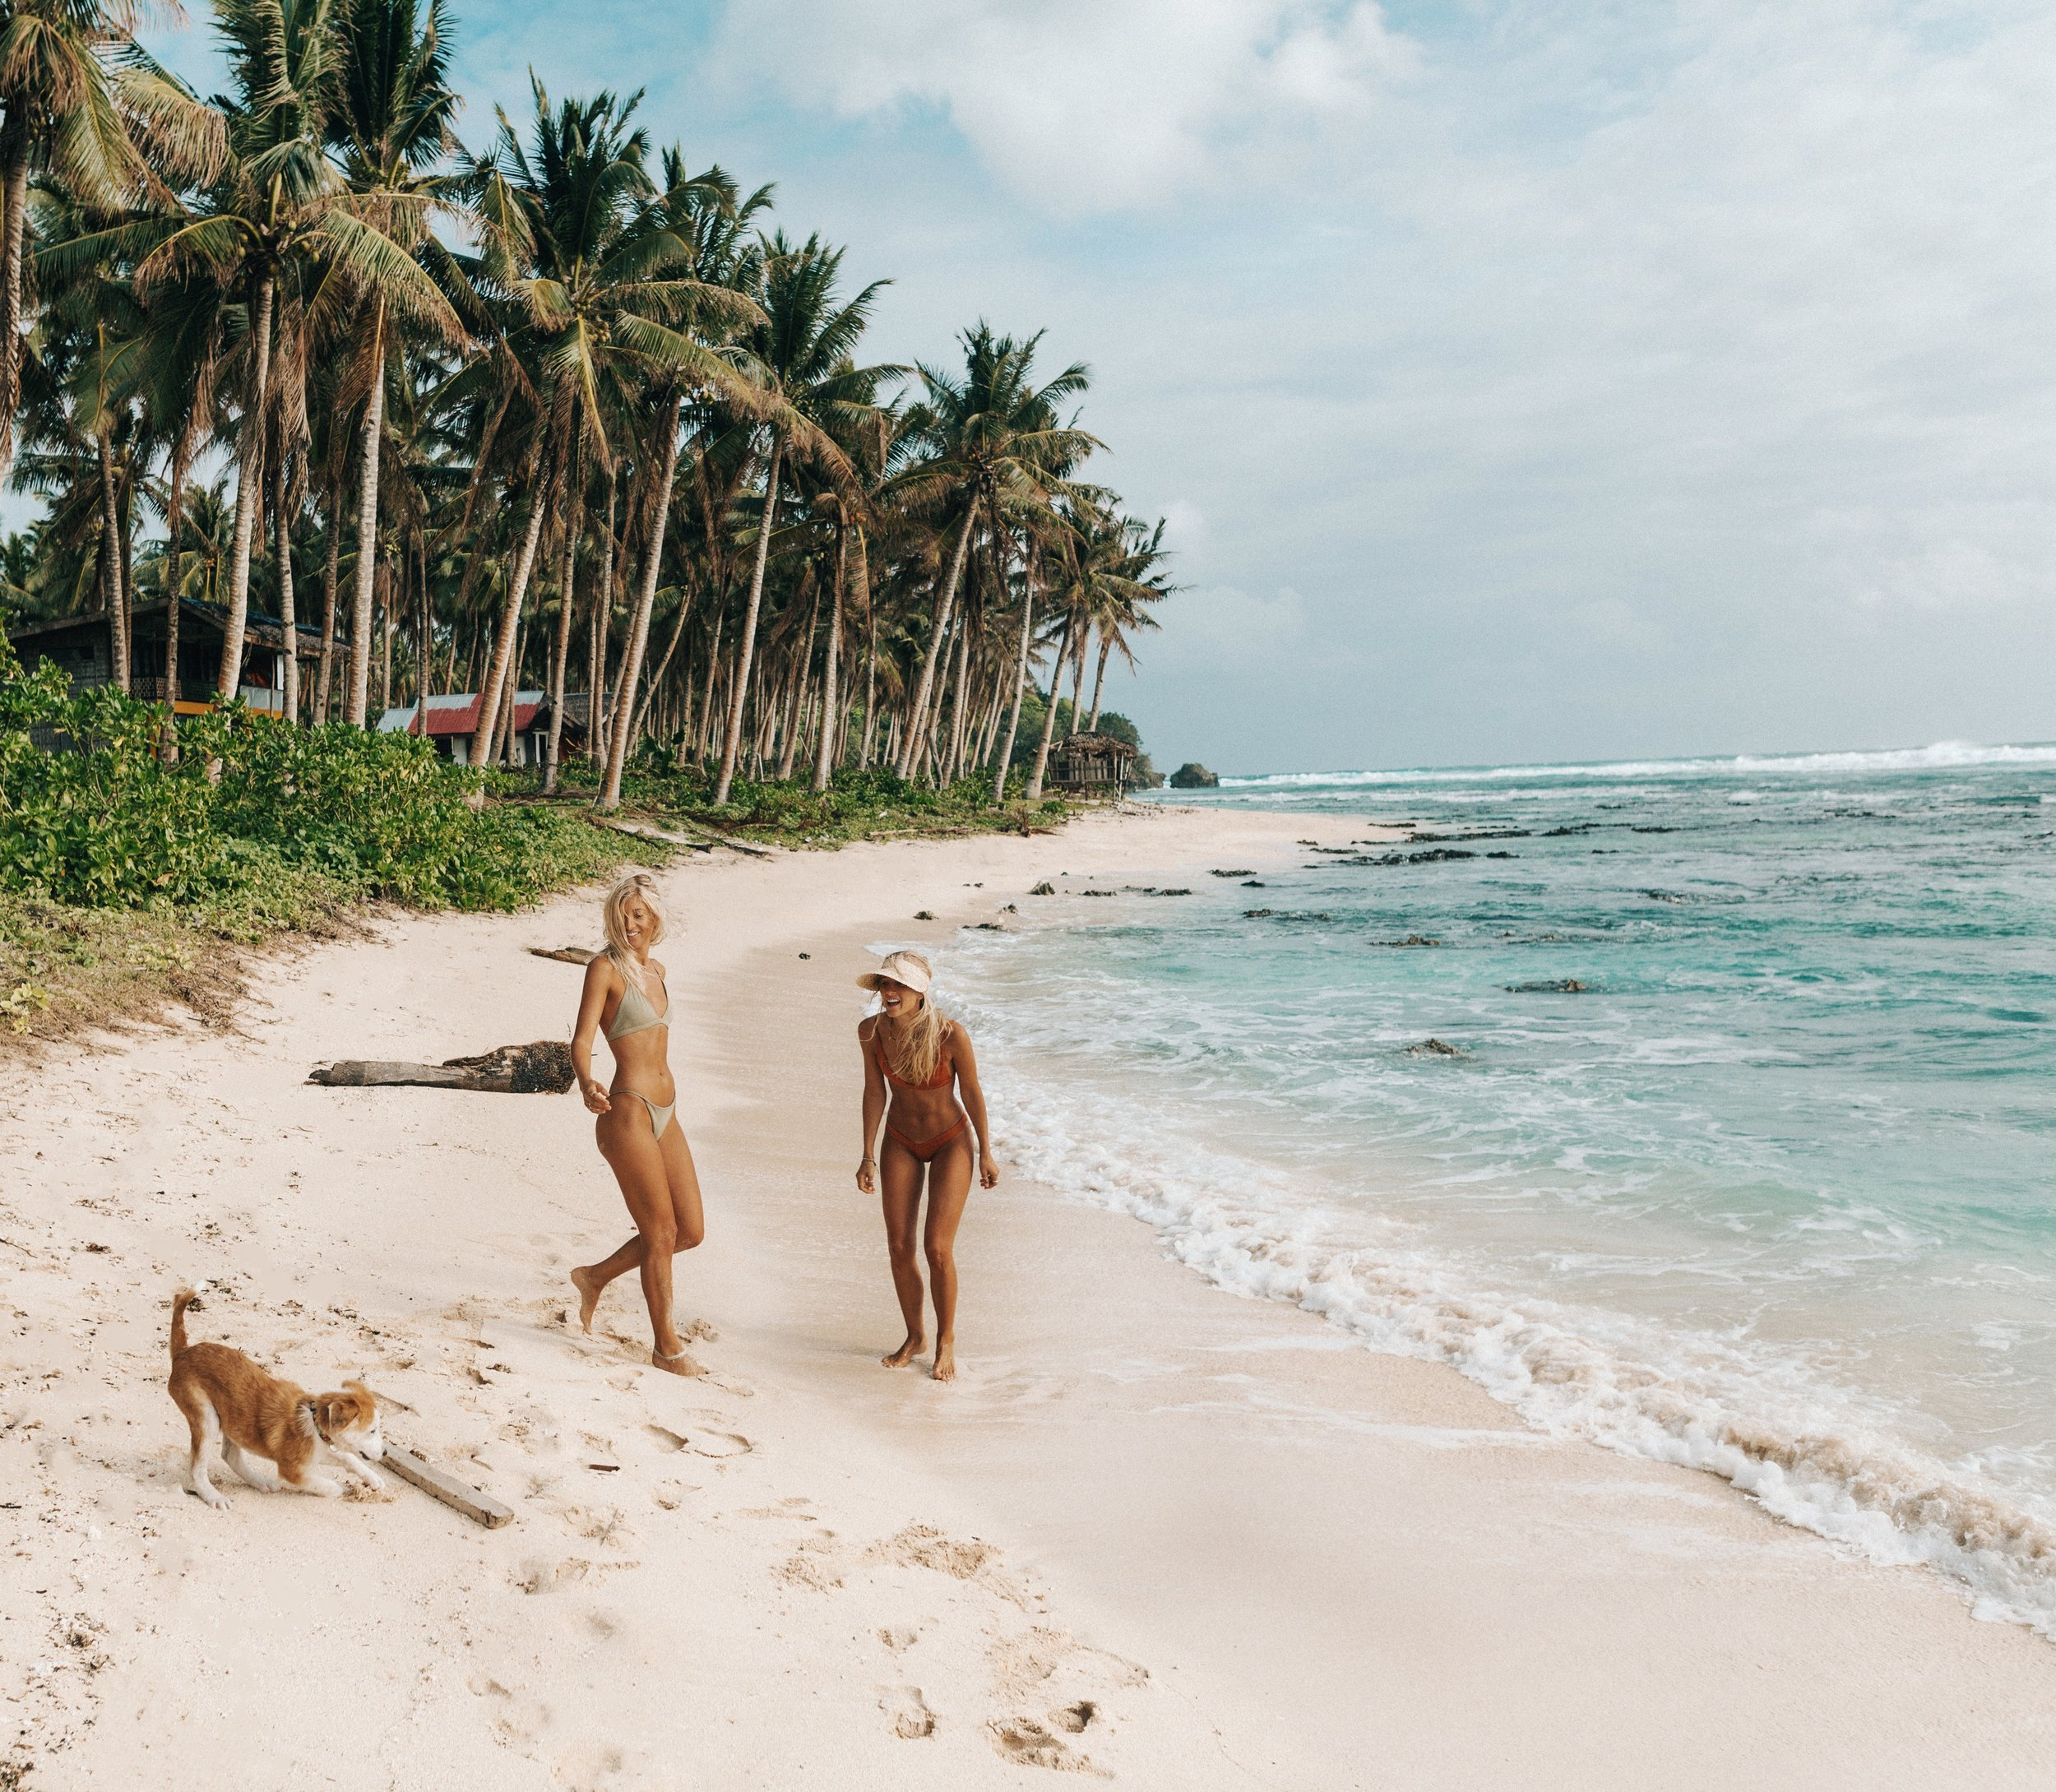 Fetch on the beaches of Siargao